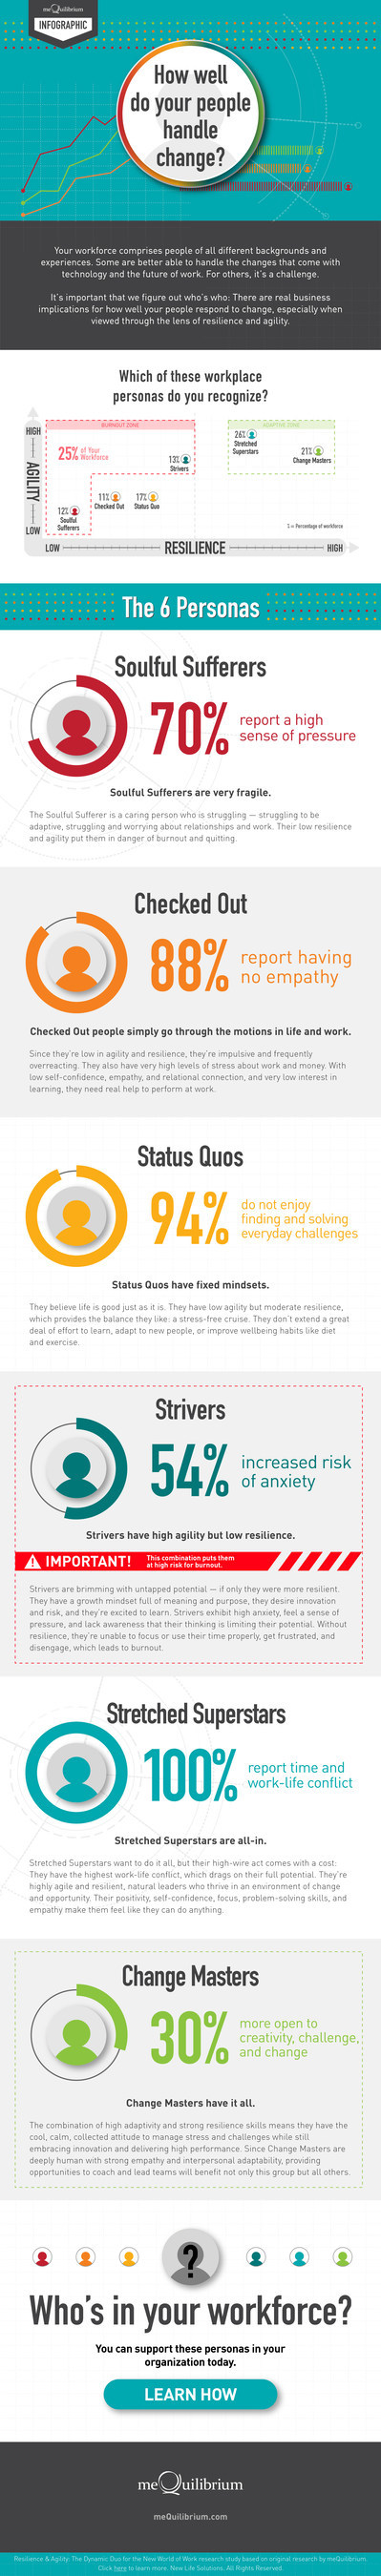 Workplace Burnout infographic